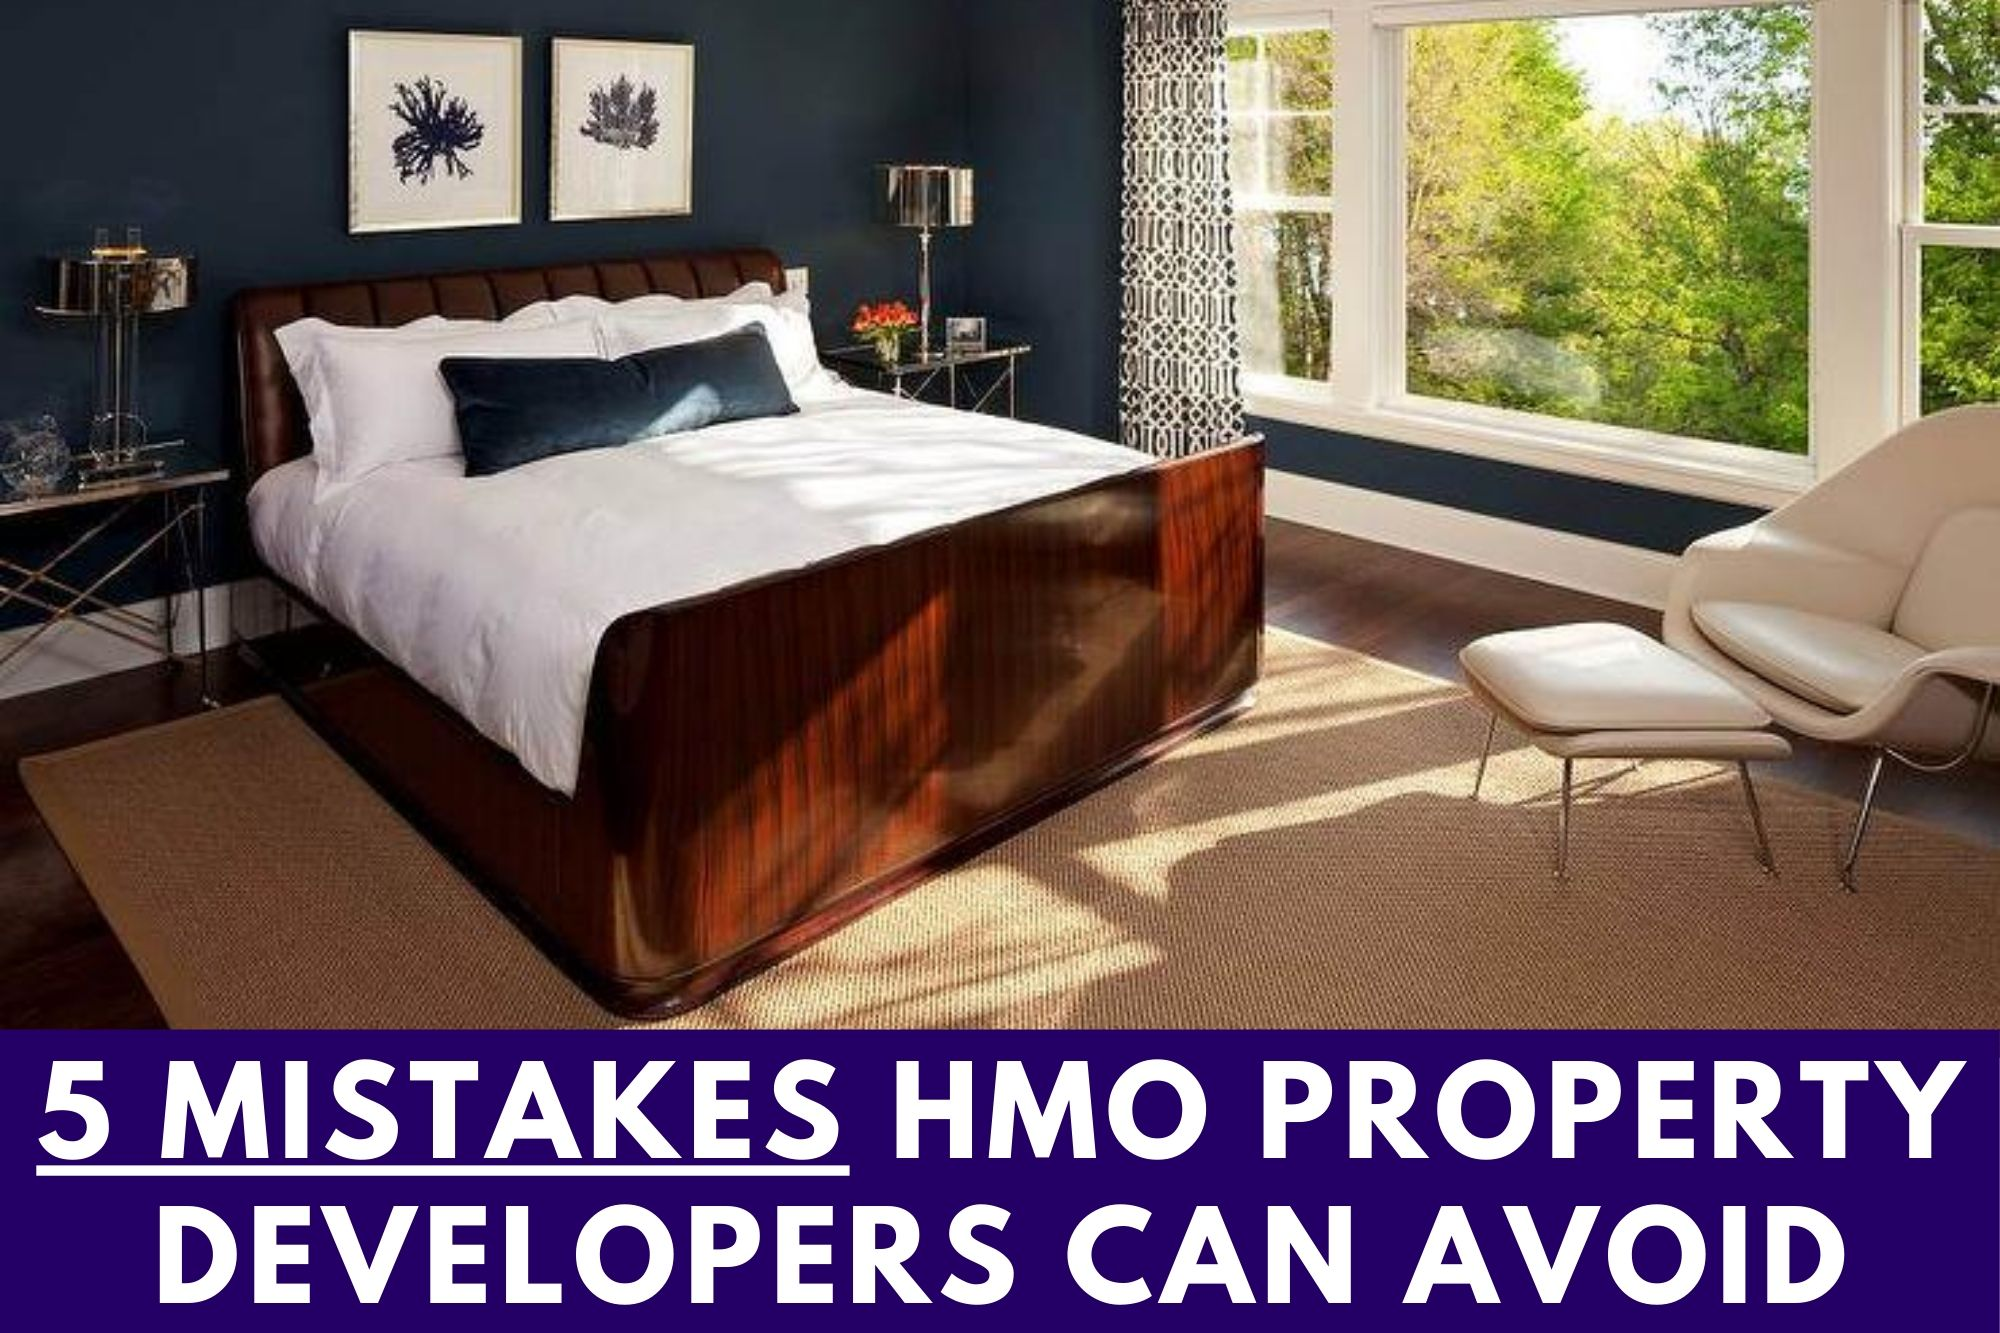 5 Mistakes HMO Property Developers Can Avoid